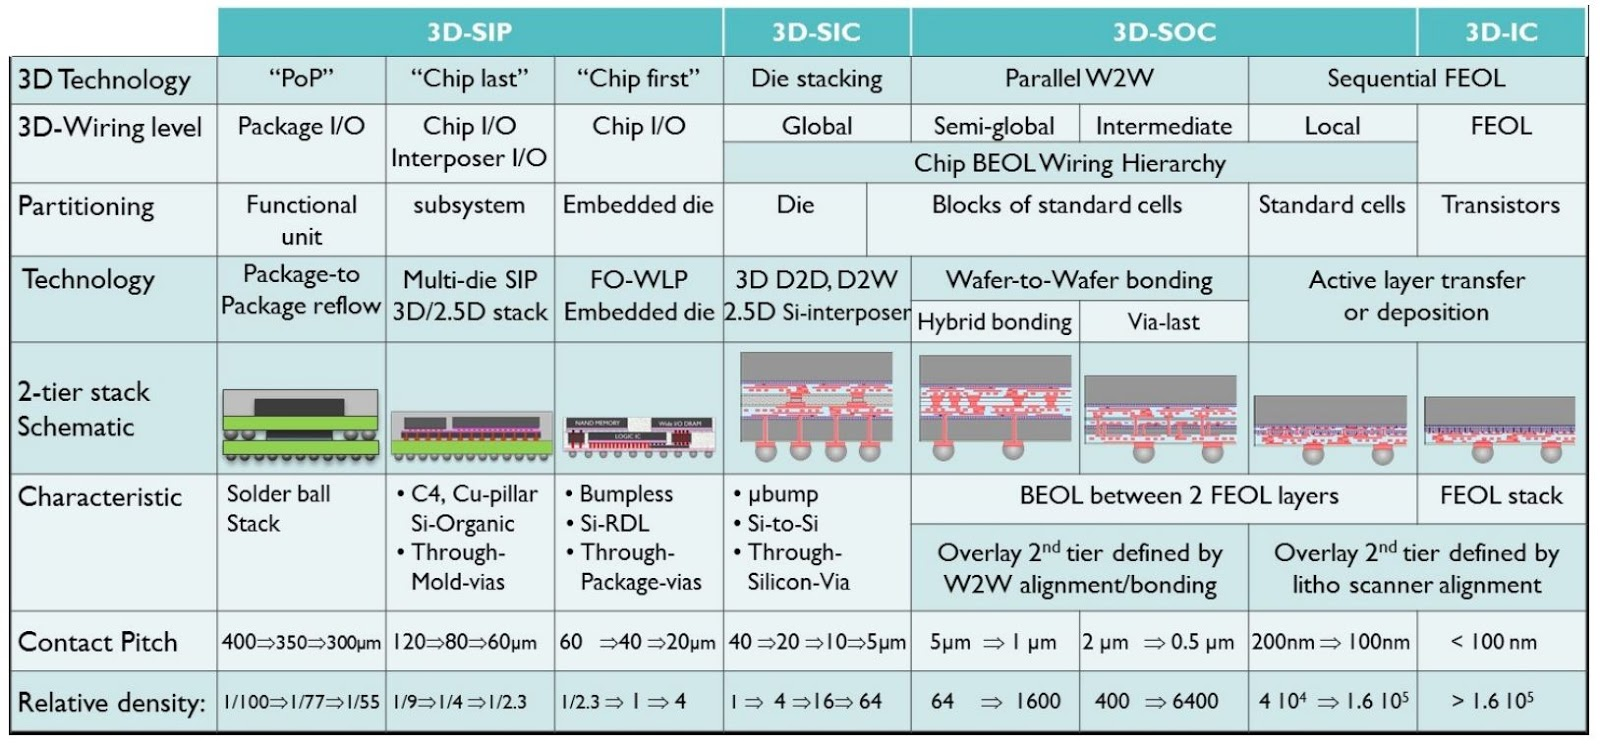 Image Sensors World: Imec 3D Stacking Aims to 100nm Contact Pitch